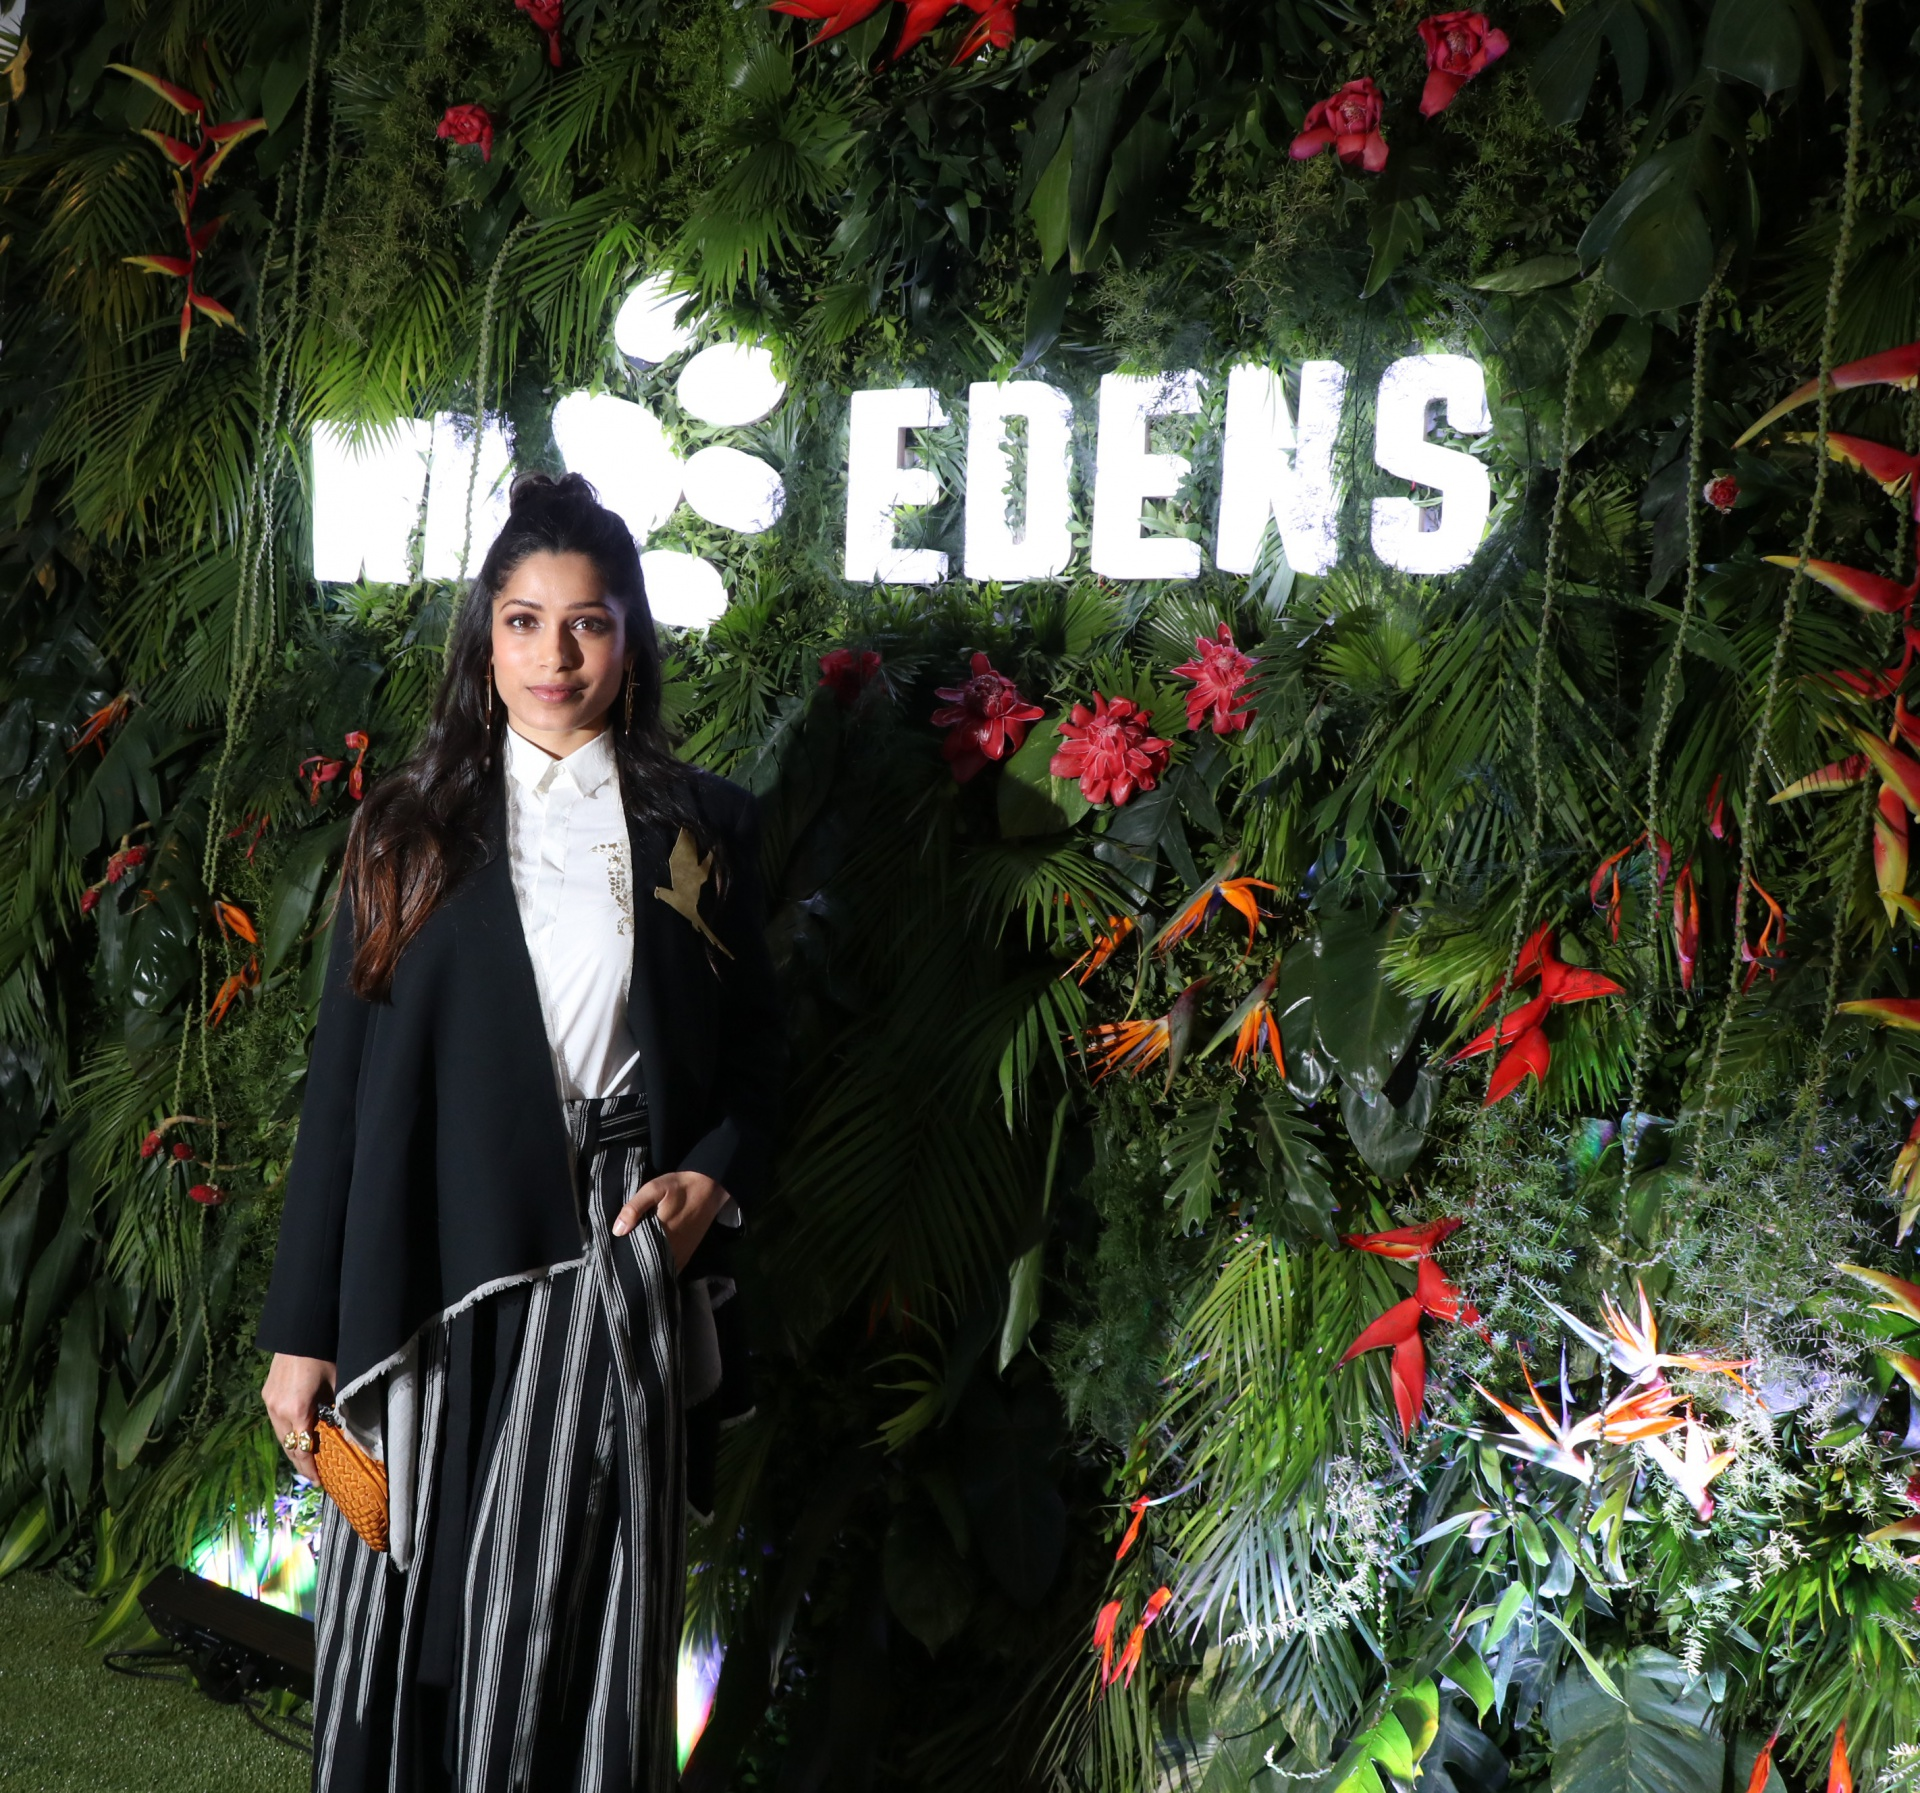 2003_Wild Edens project Ambassador, actress and activist Freida Pinto at the premeire screening of 'Wild Edens_ South Asia' Documentary.jpg